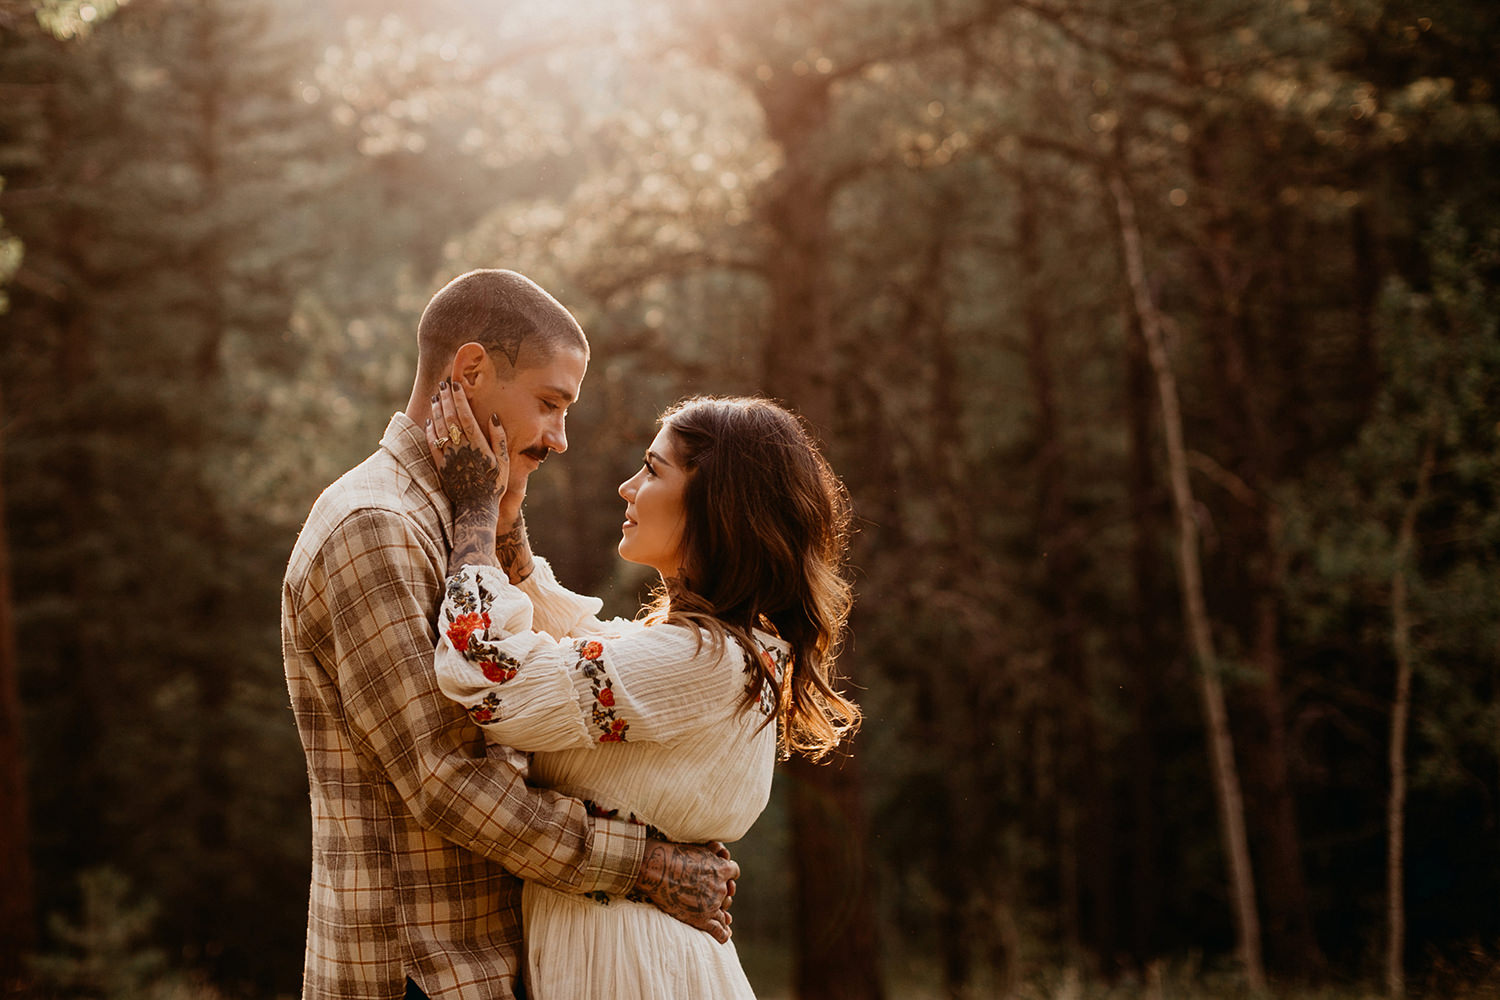 Bailey Colorado Denver Wedding Engagement Photographer Liz Osban Cheyenne Wyoming Mountain Elopement Boho bohemian vintage film tattoo non traditional tattooed rock and roll 27.jpg